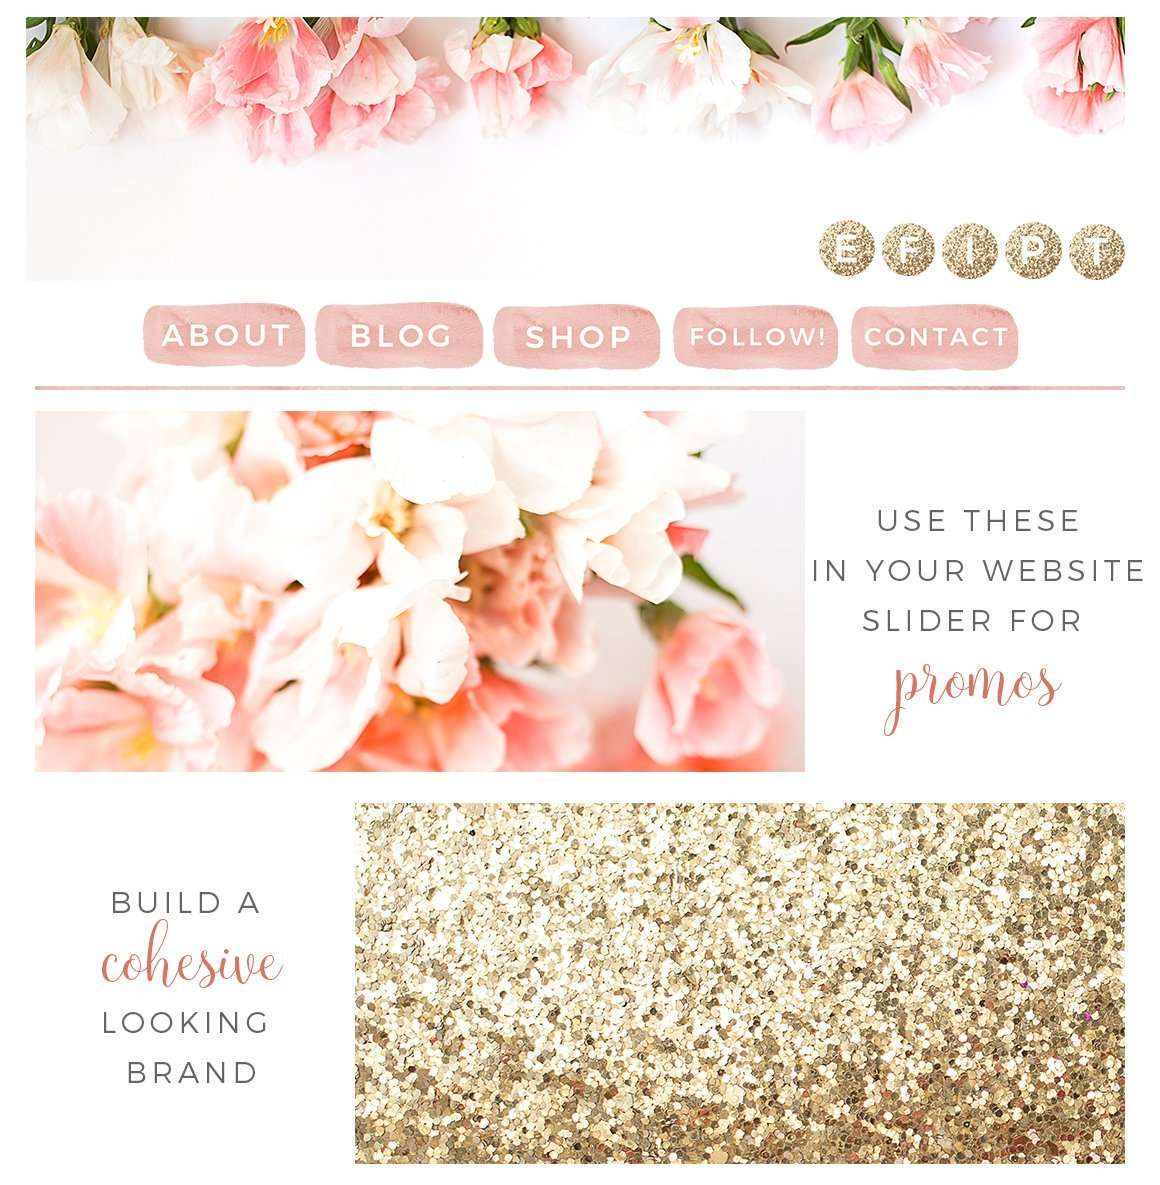 Blush-and-Gold-Web-Branding-Kit-2.jpg